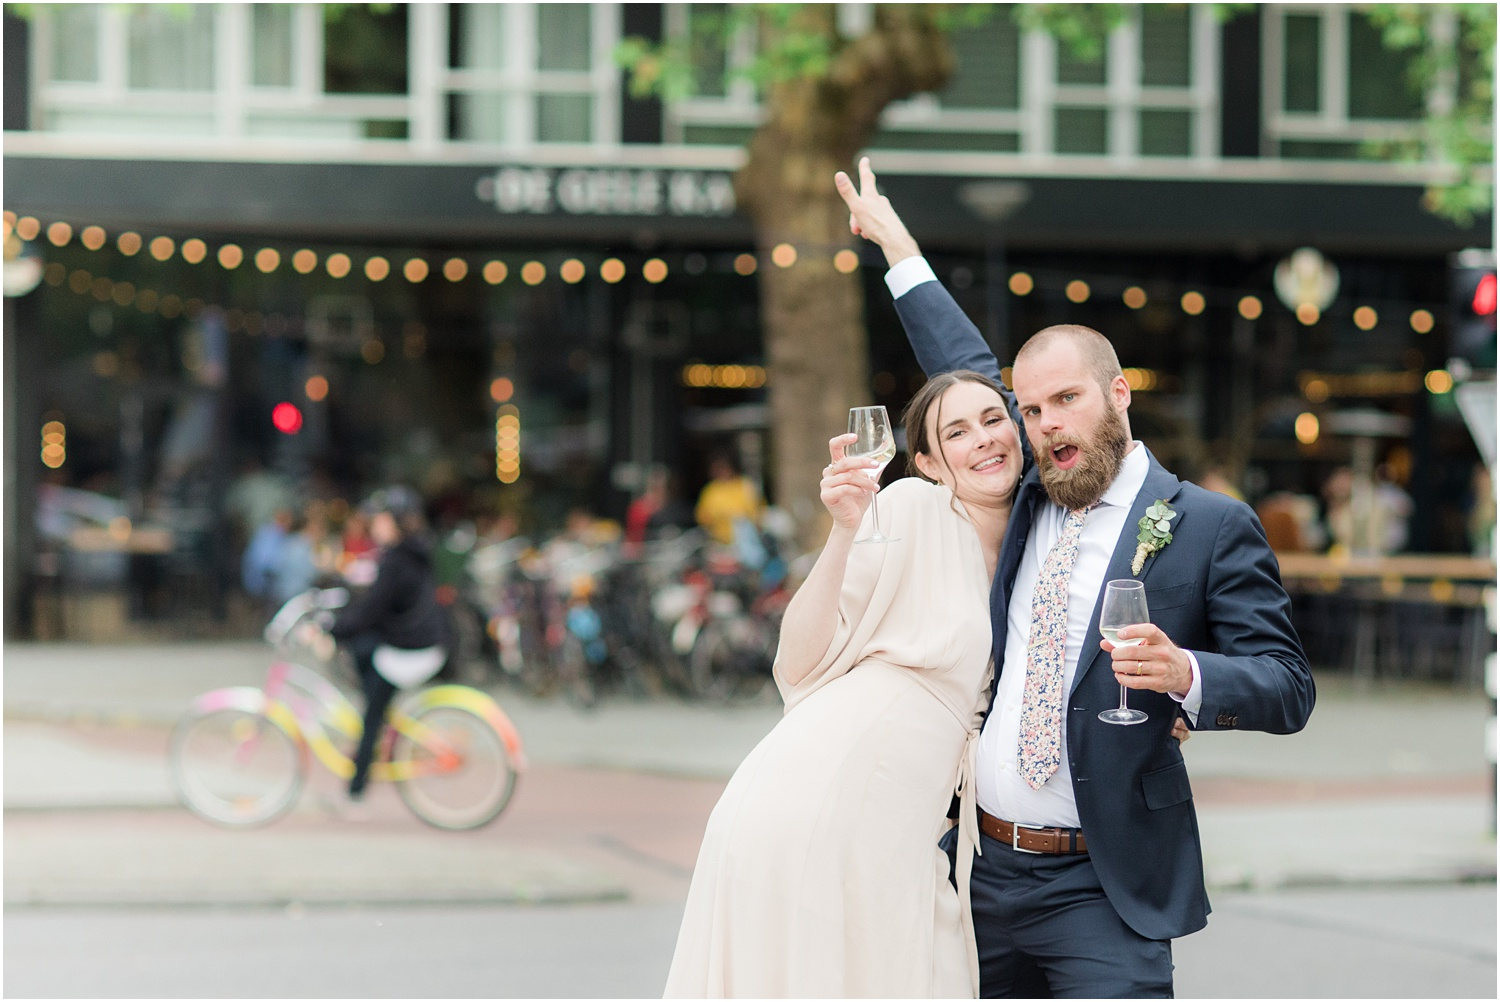 fun bride and groom photos on the streets of Rotterdam